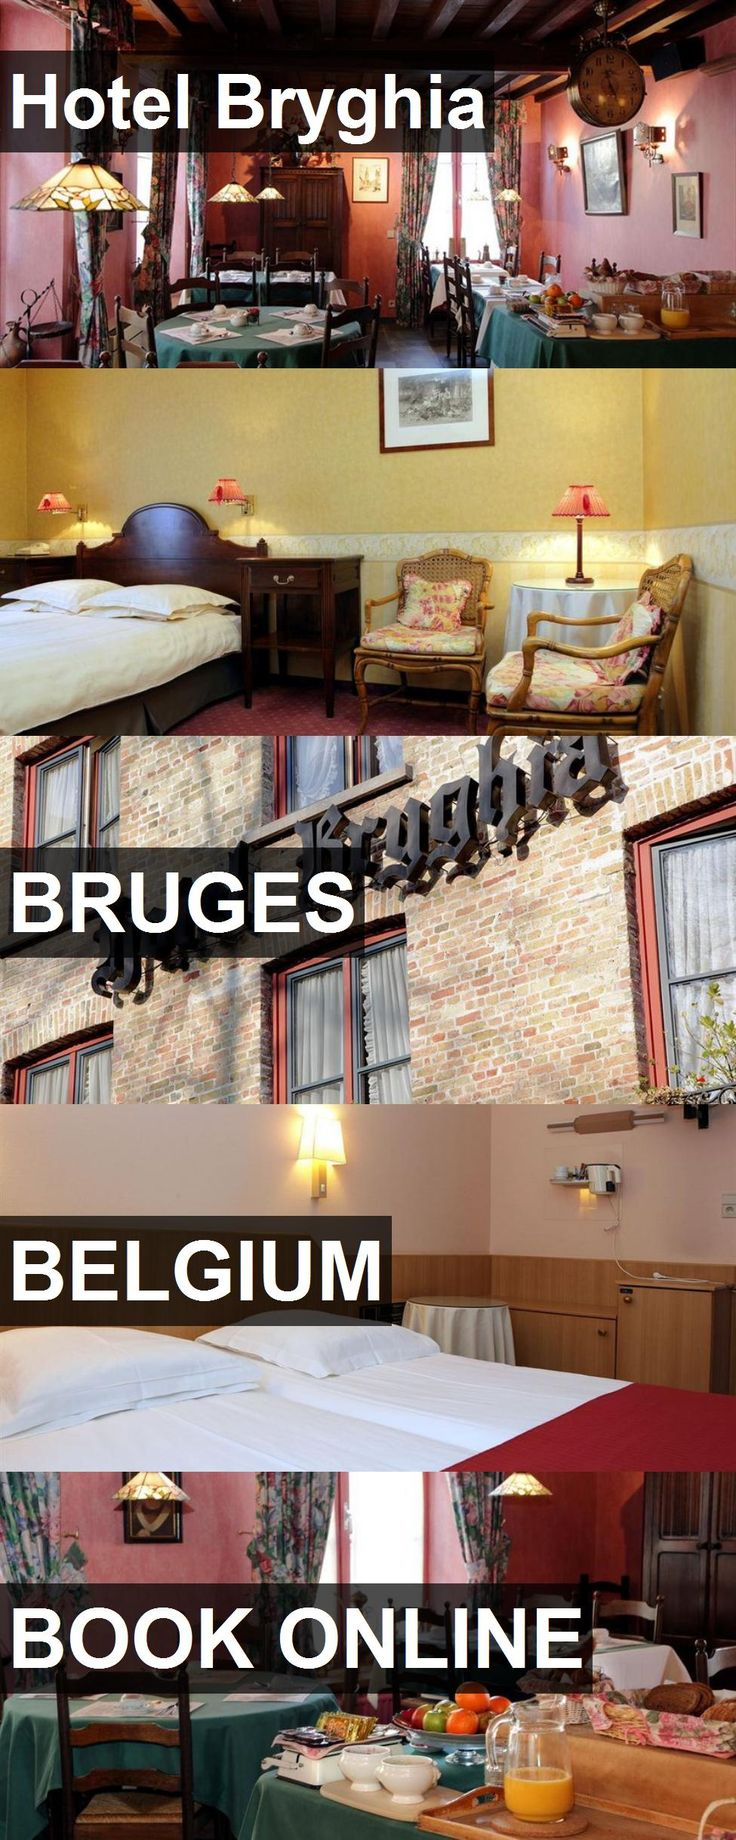 Hotel Bryghia in Bruges, Belgium. For more information, photos, reviews and best prices please follow the link. #Belgium #Bruges #travel #vacation #hotel